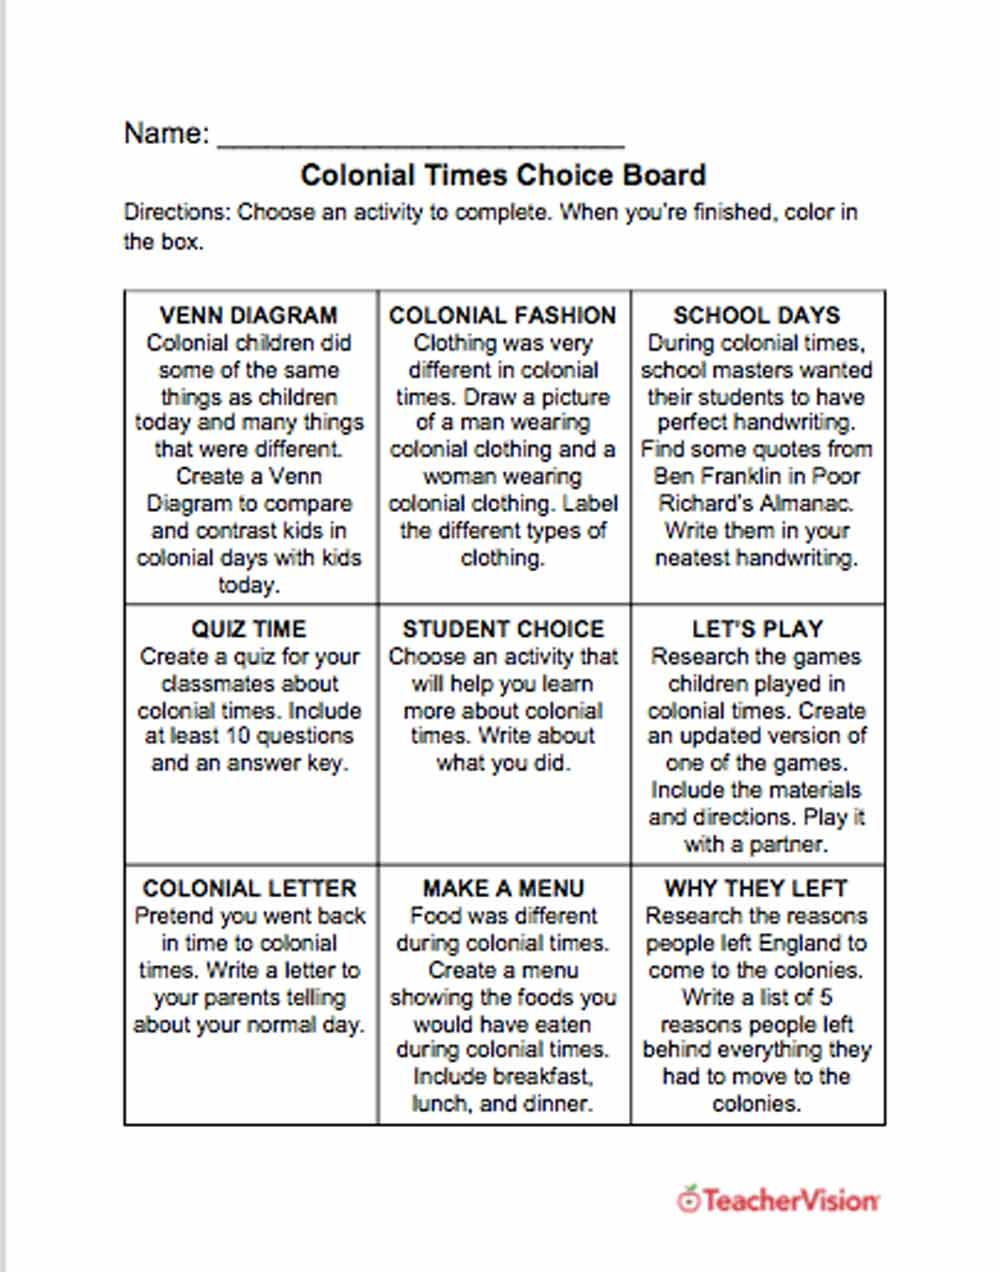 Colonial Times Choice Board